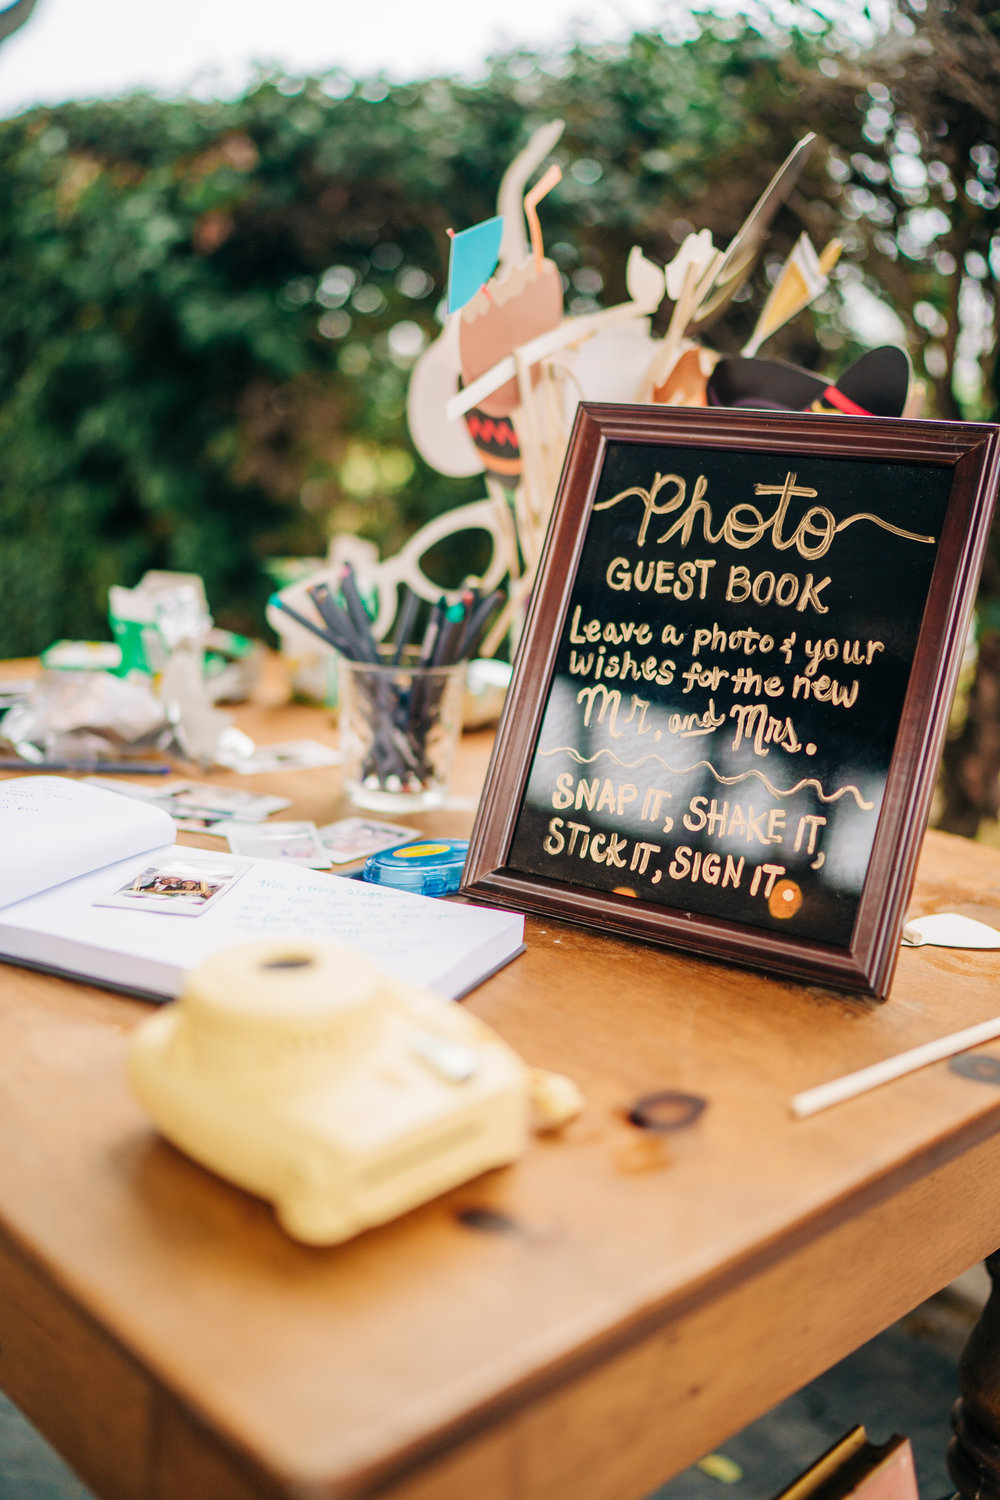 www.santabarbarawedding.com | Brandon Bibbins Photography | The Cottages at Polo Run | Bright Event Rentals | Photo Guest Book